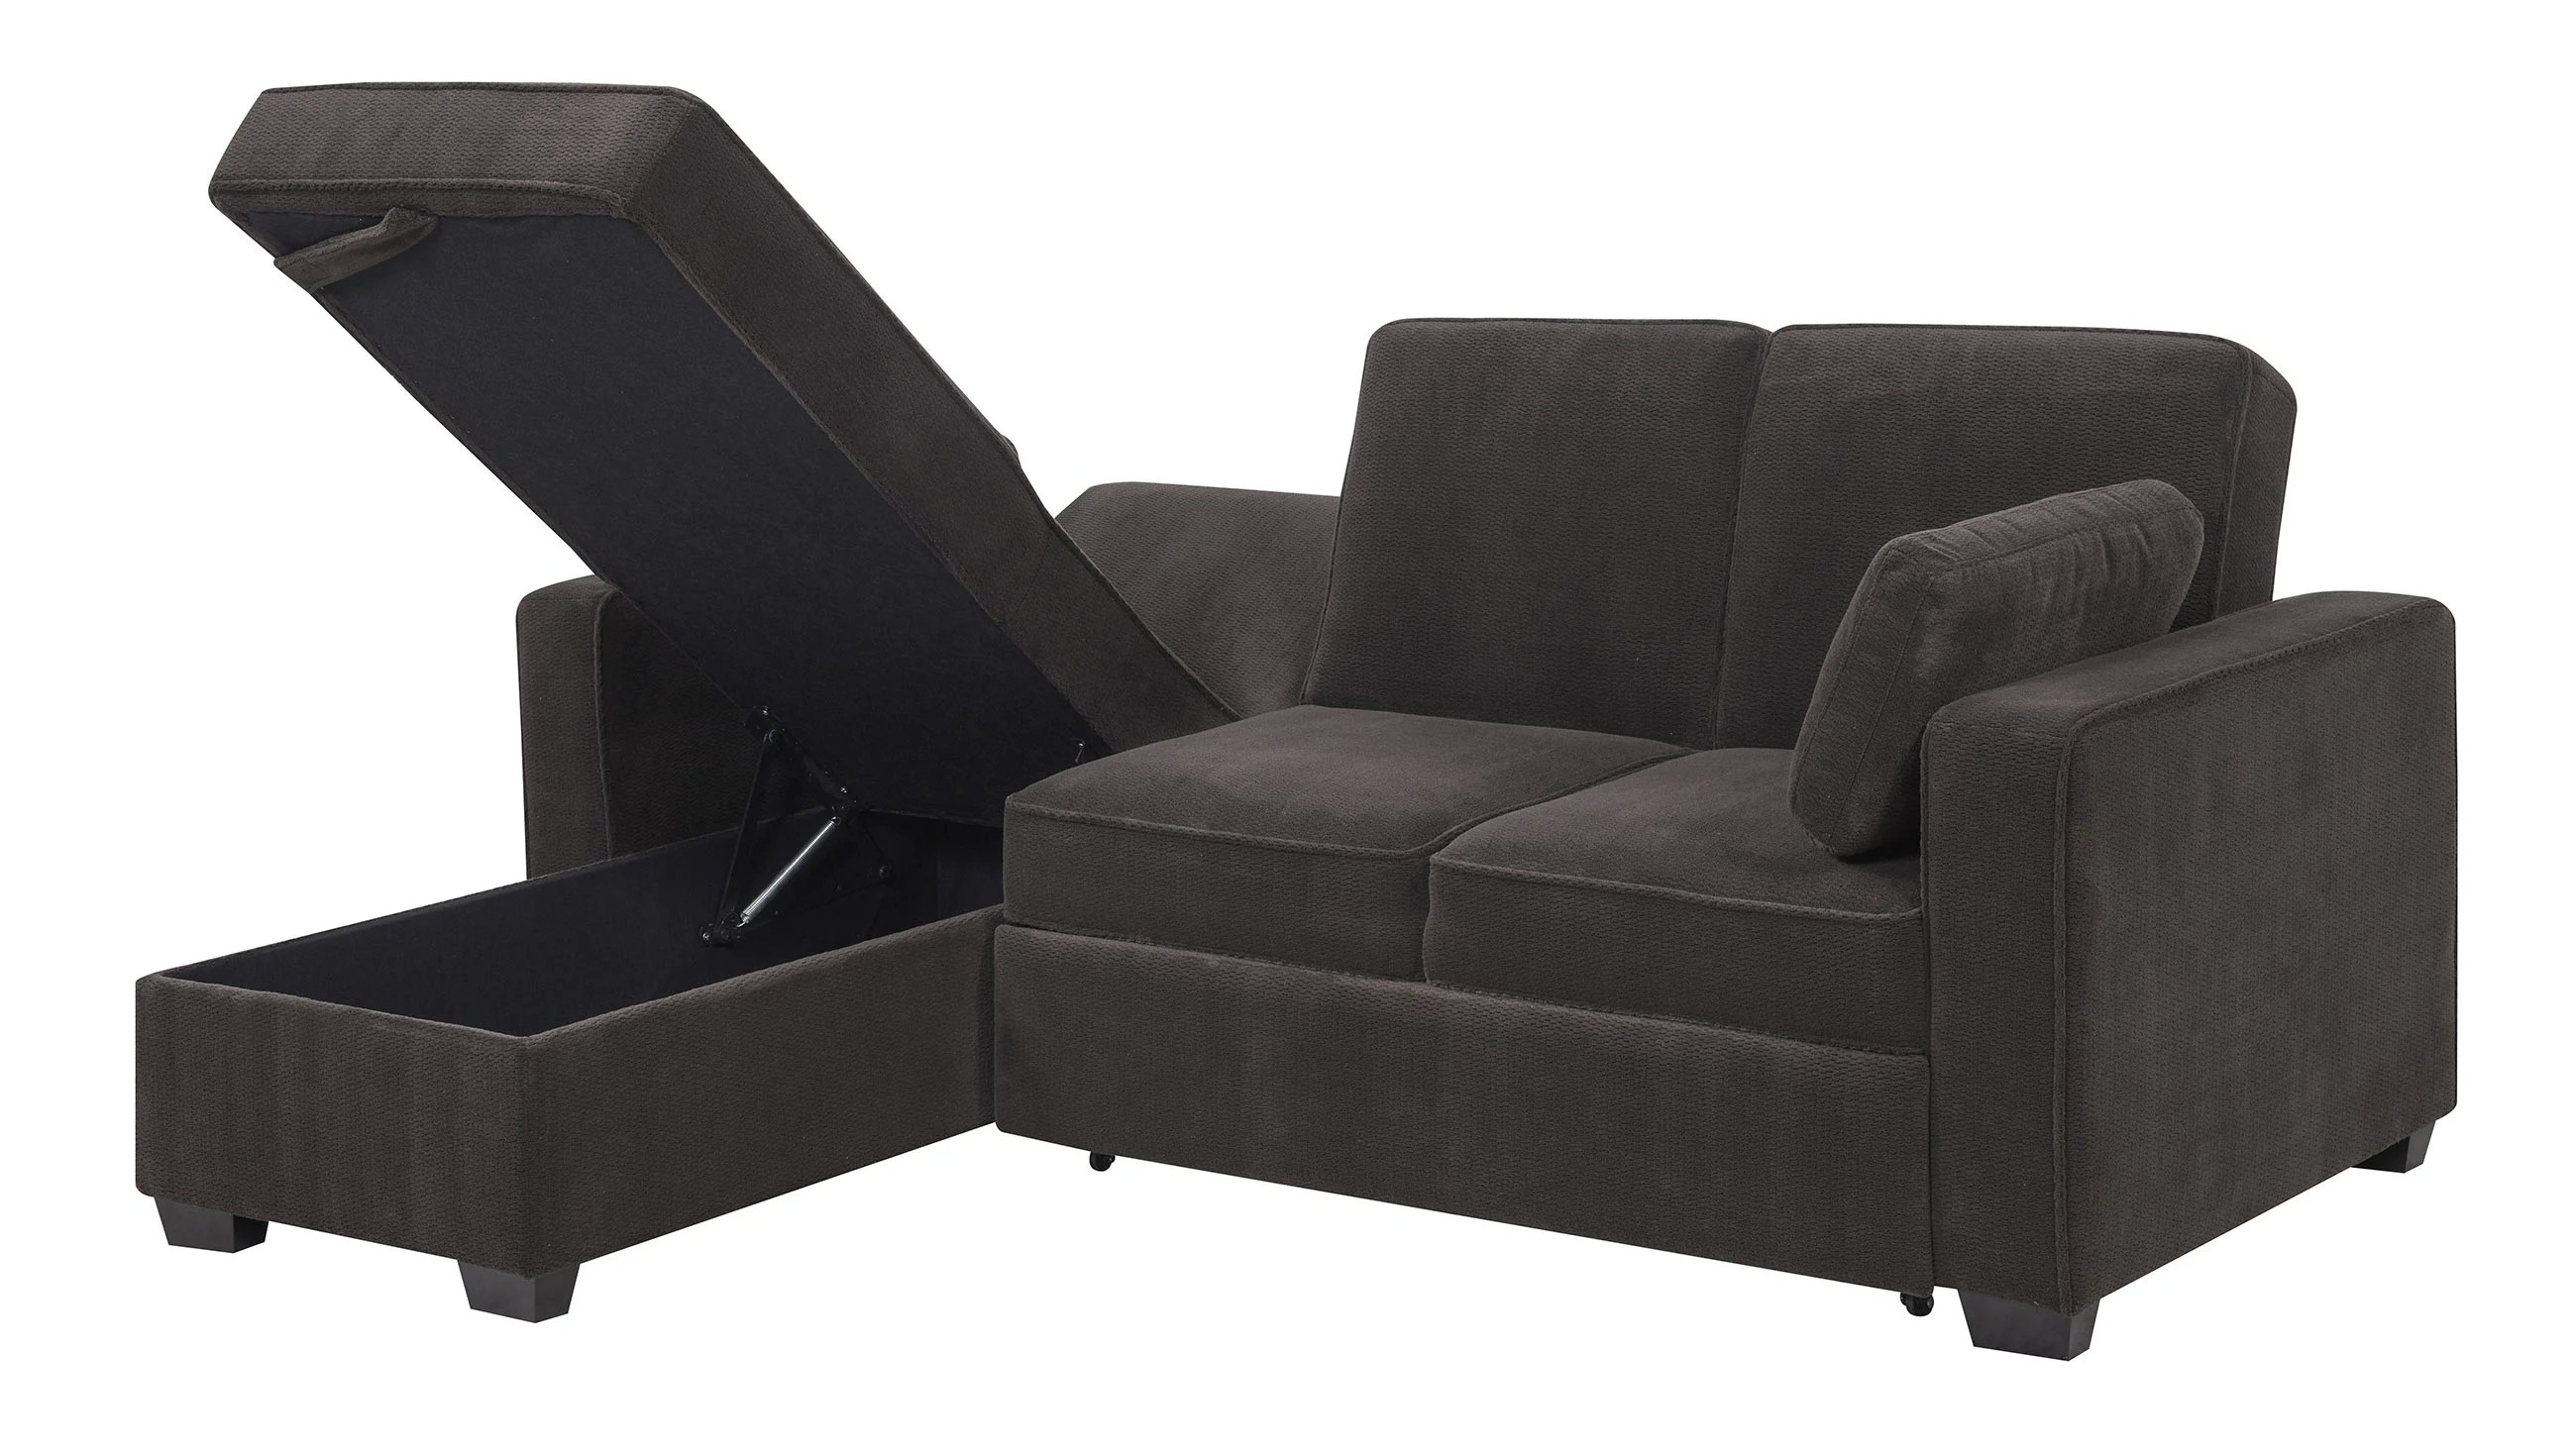 daria serta gray convertible sofa leather corner with recliner sectional sleeper baci living room